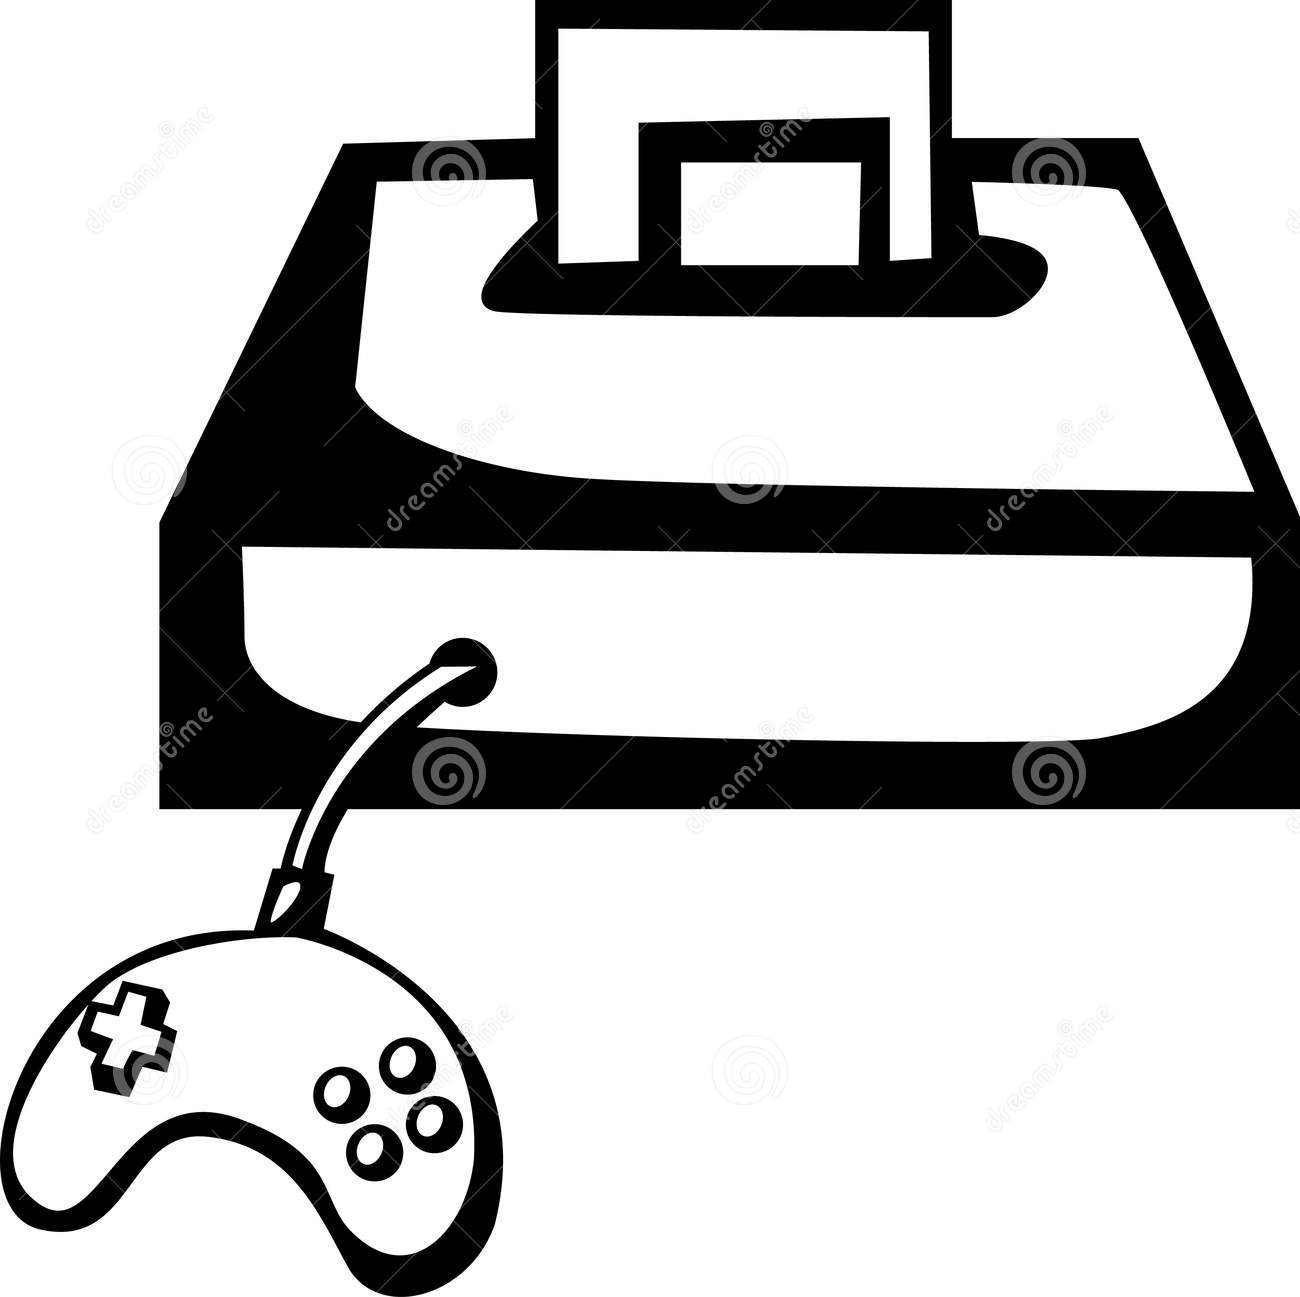 Games clipart black and white.